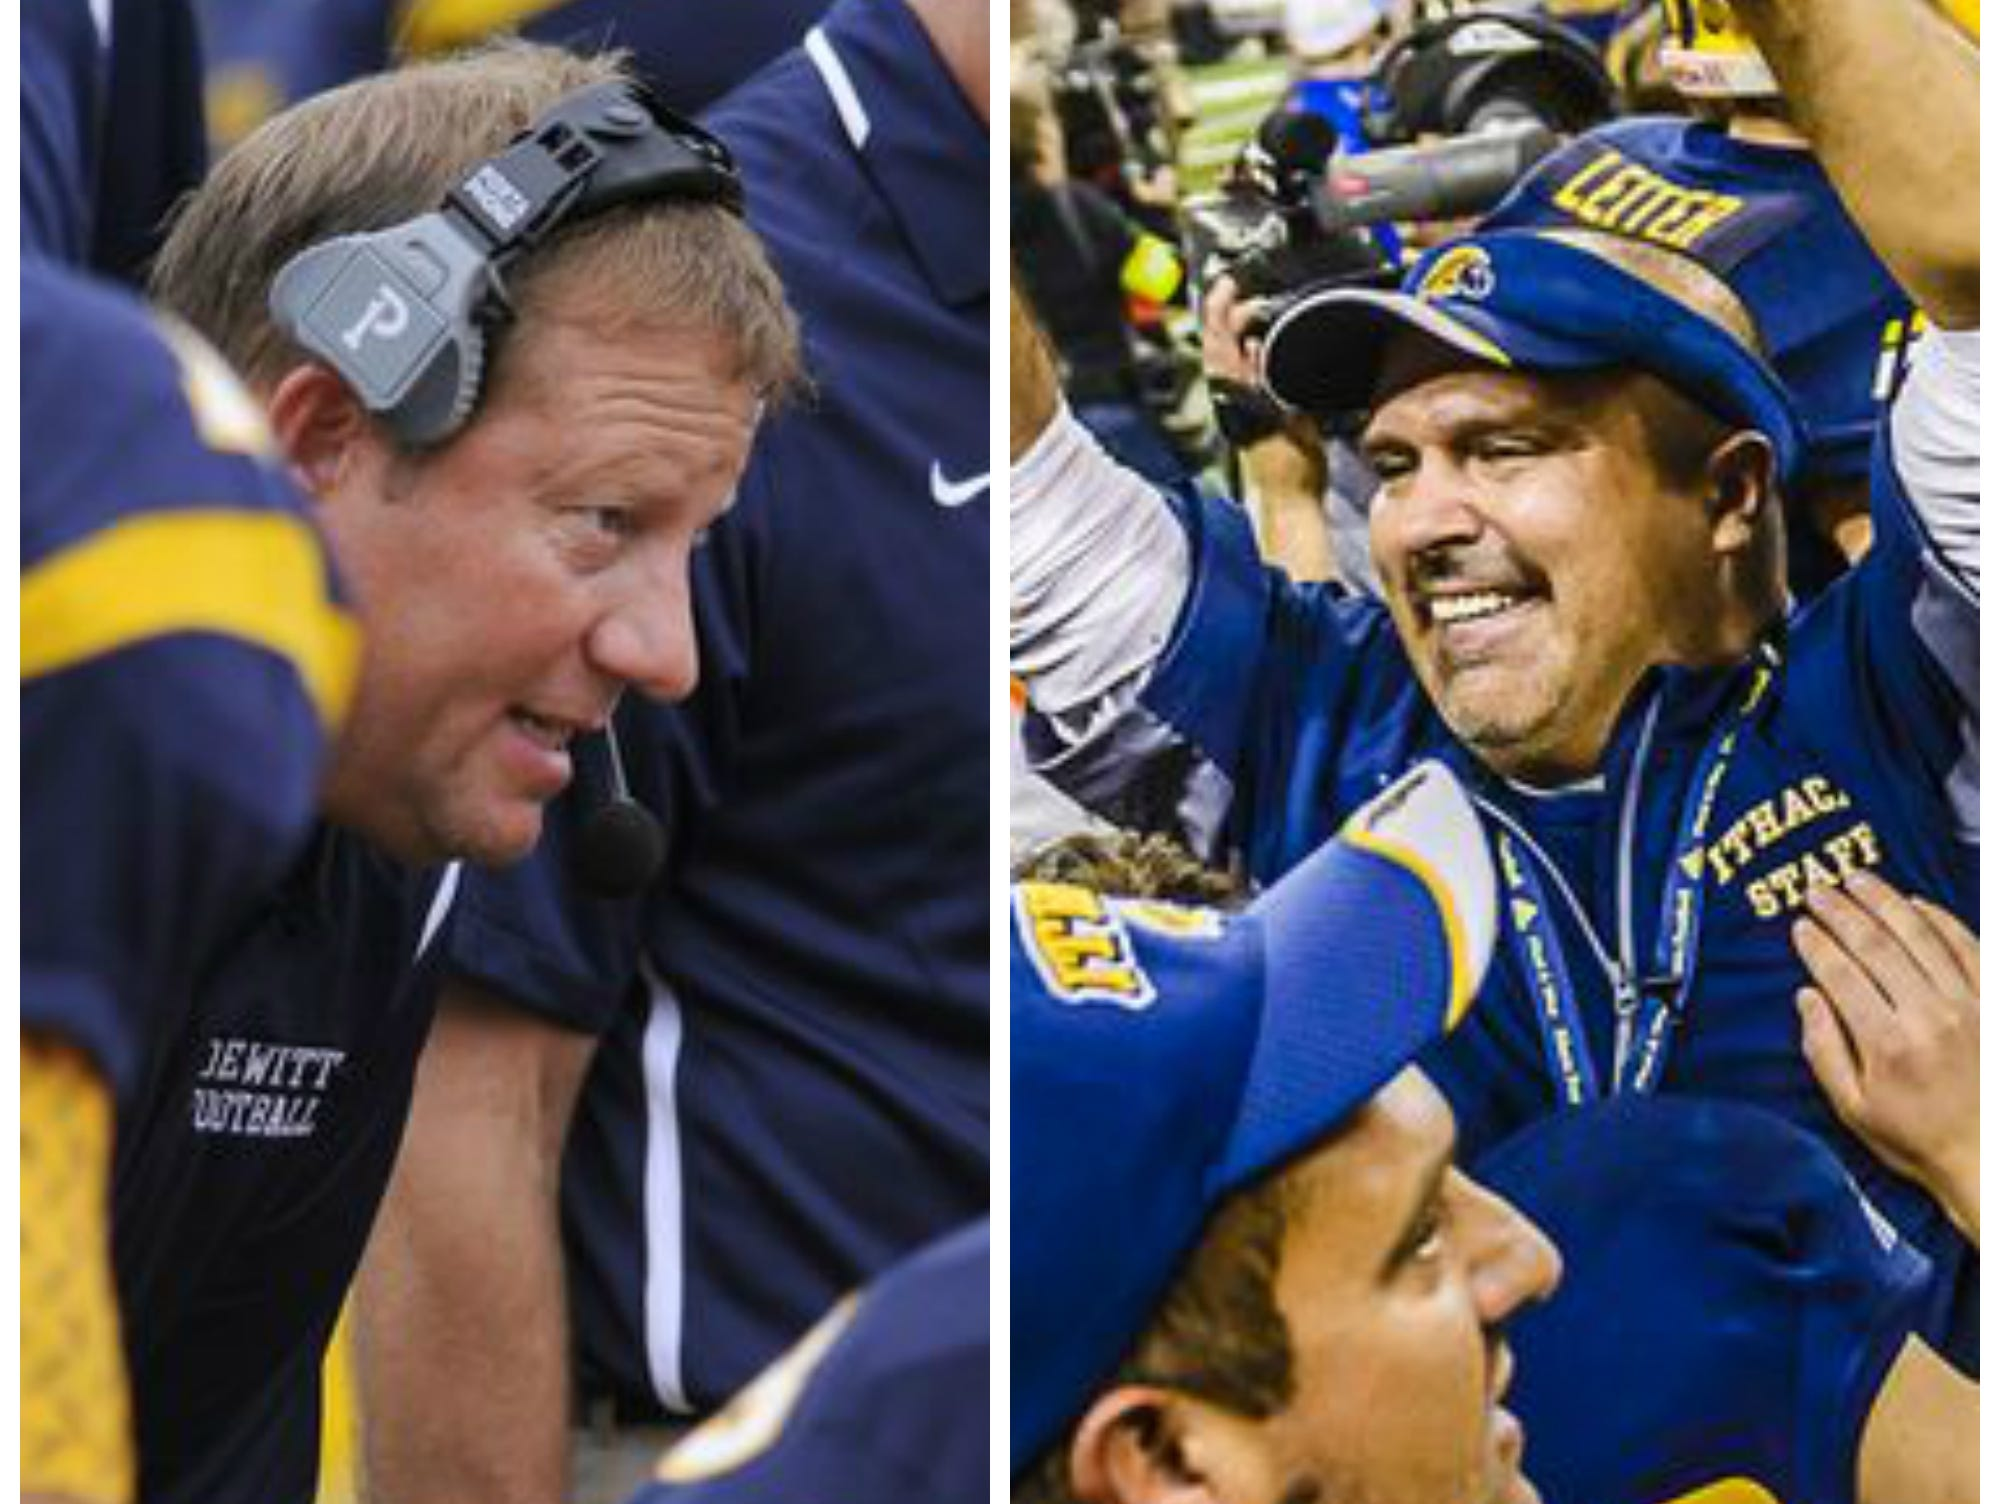 DeWitt's Rob Zimmerman and Ithaca's Terry Hessbrook will be inducted into the Michigan High School Football Coaches Association Hall of Fame next month.